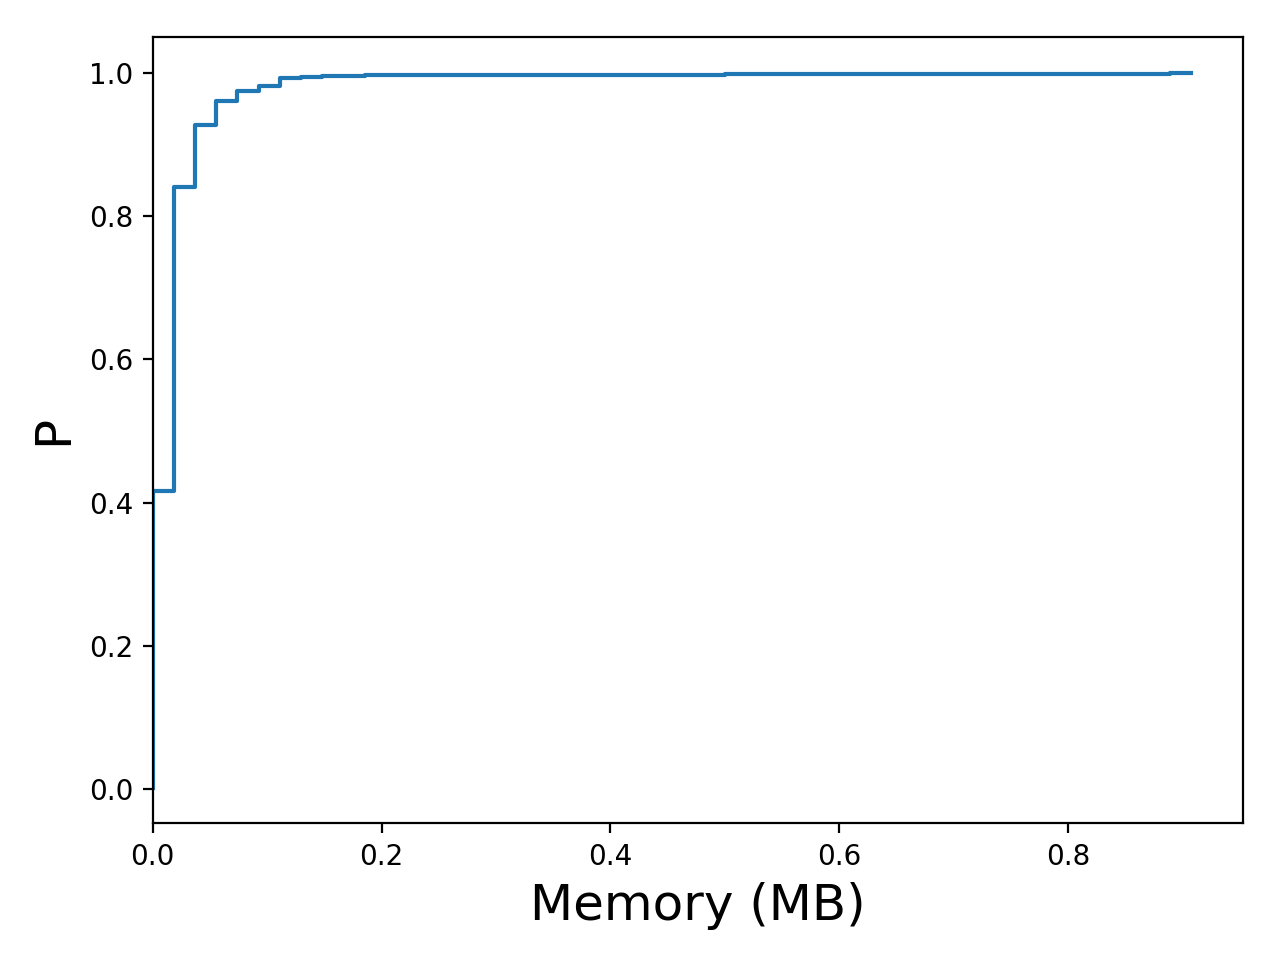 Task memory consumption graph for the Google trace.